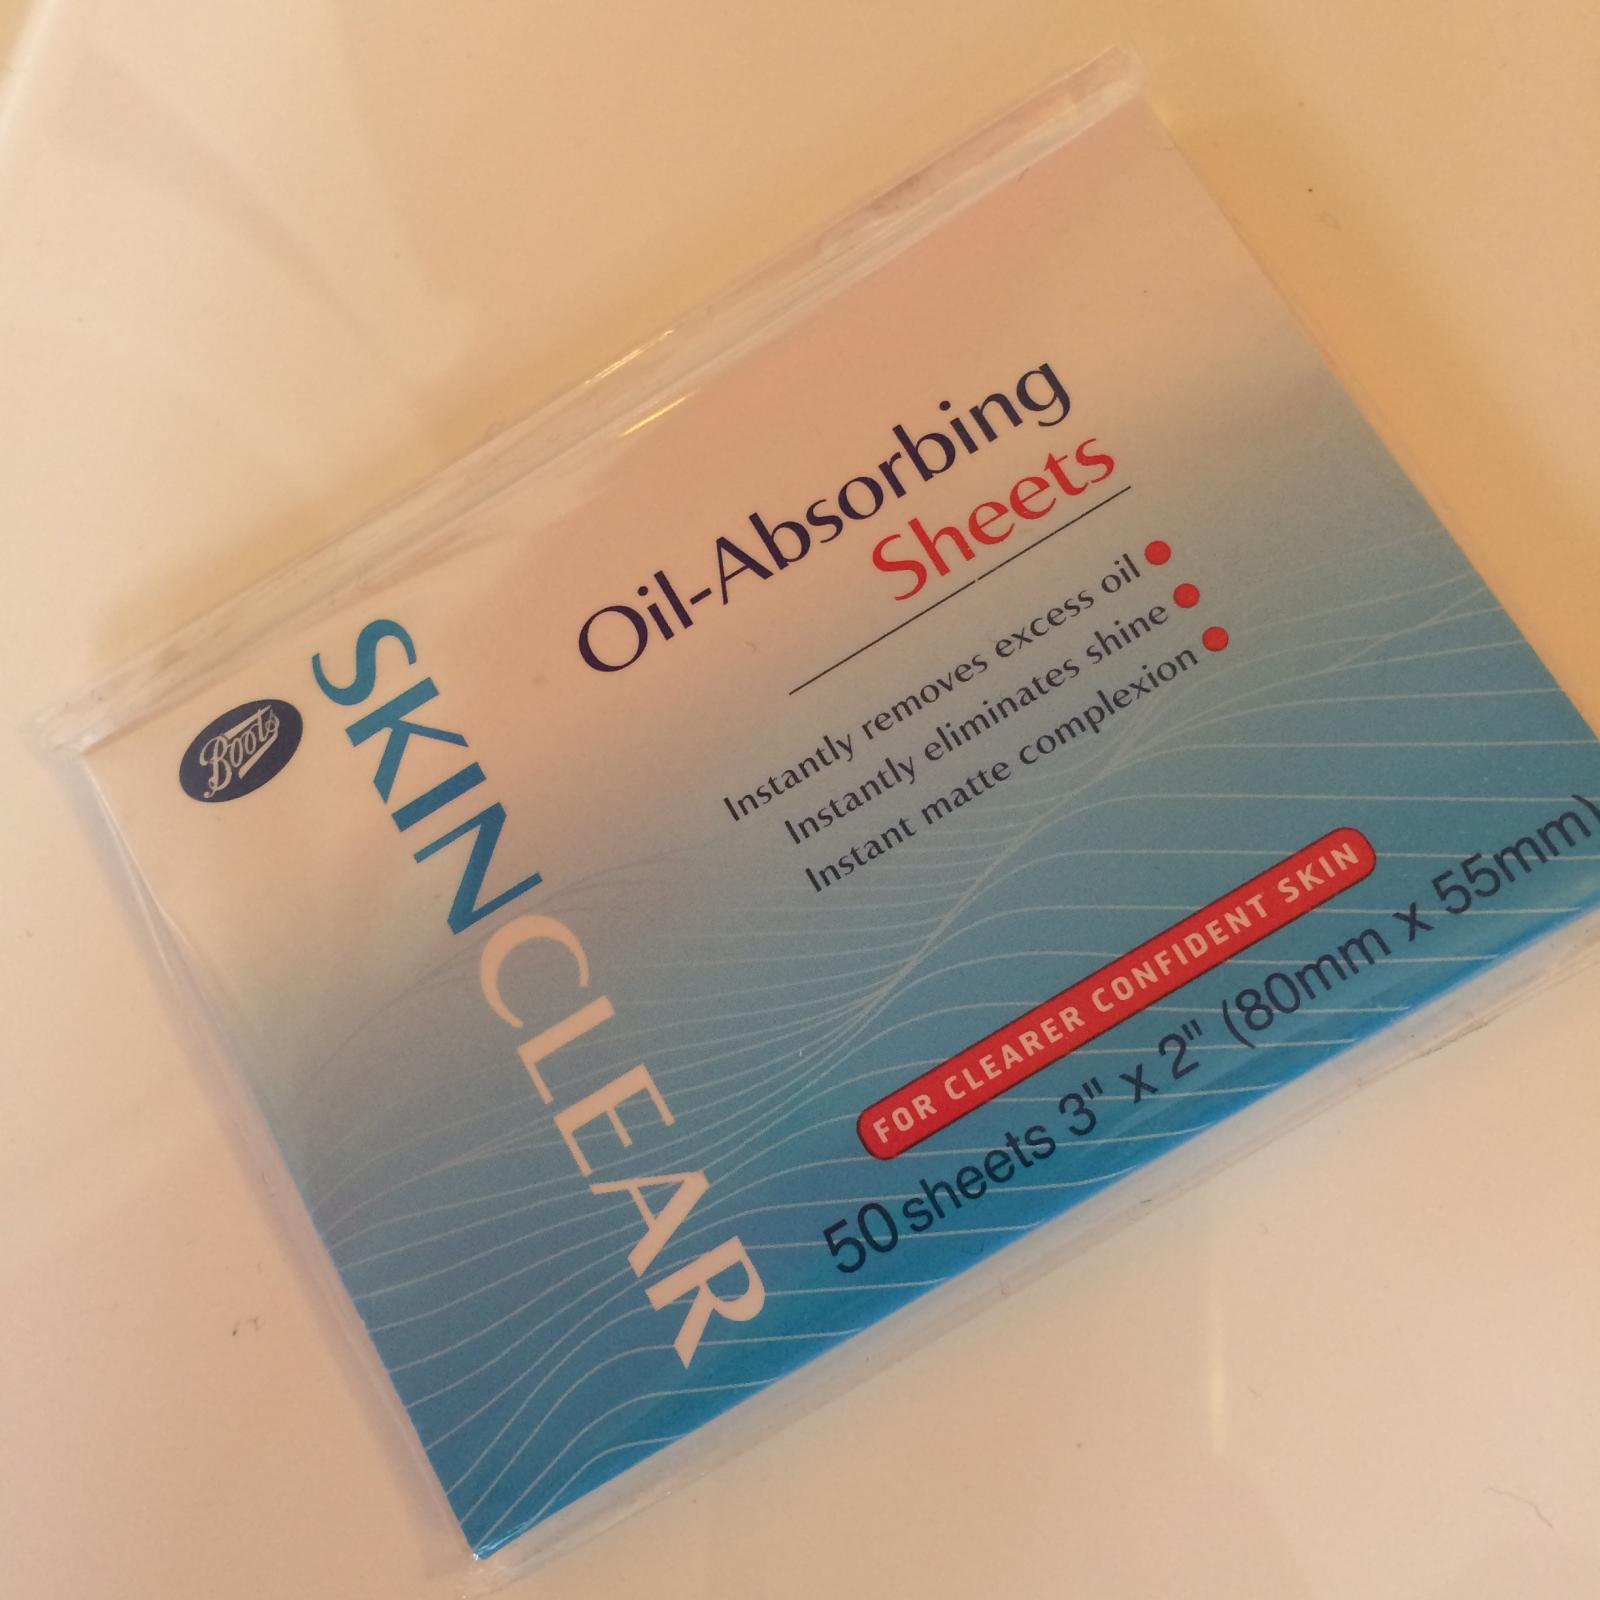 Oily skin and t-zone saviour -Boots Skin Clear Oil Absorbing Sheets – Benefit licence to blot dupe?